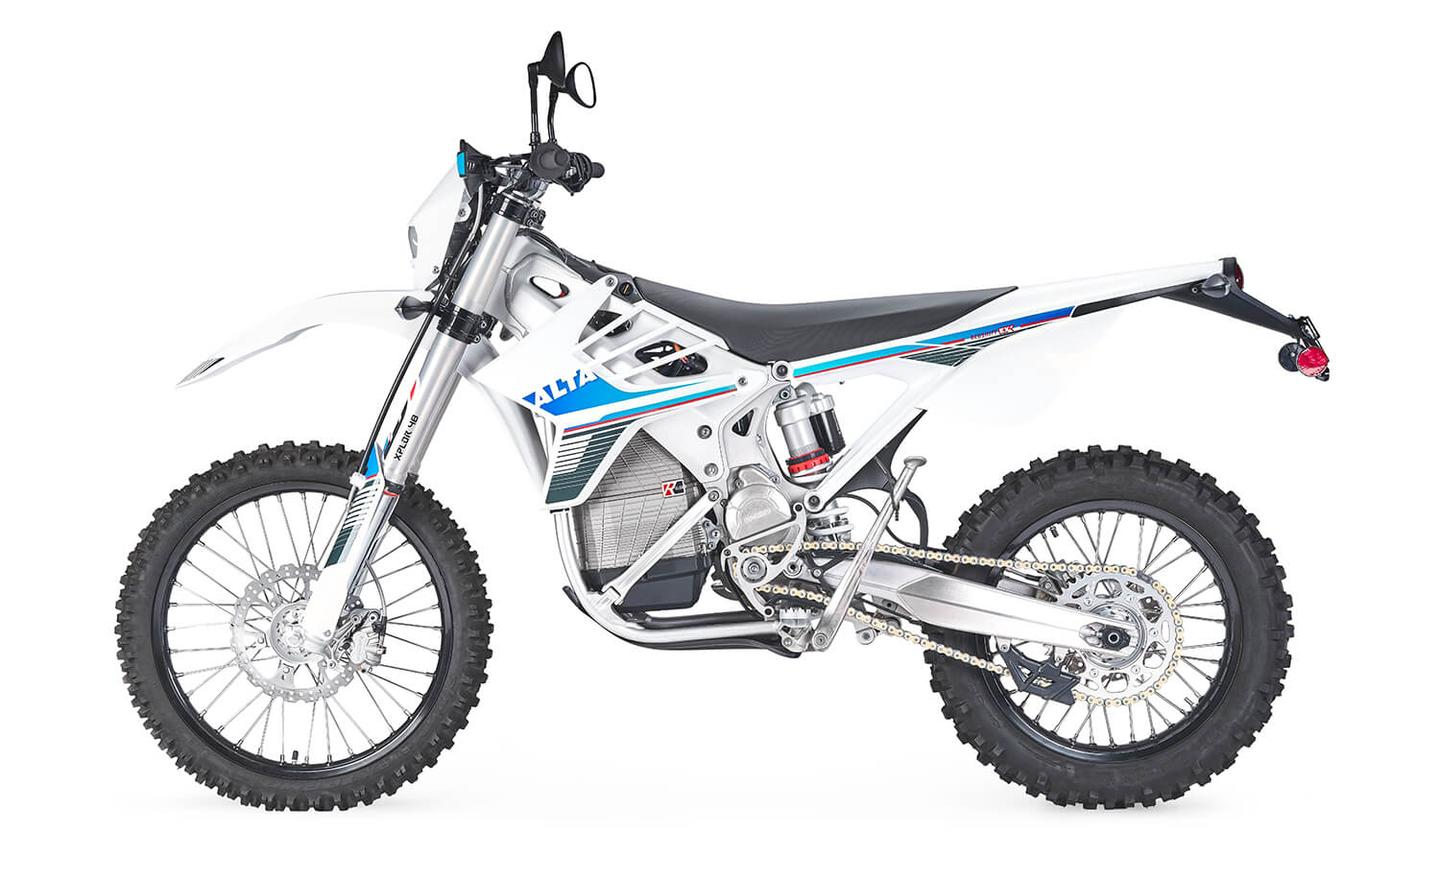 Alta Redshift EXR: 273-pounds weight ready to ride